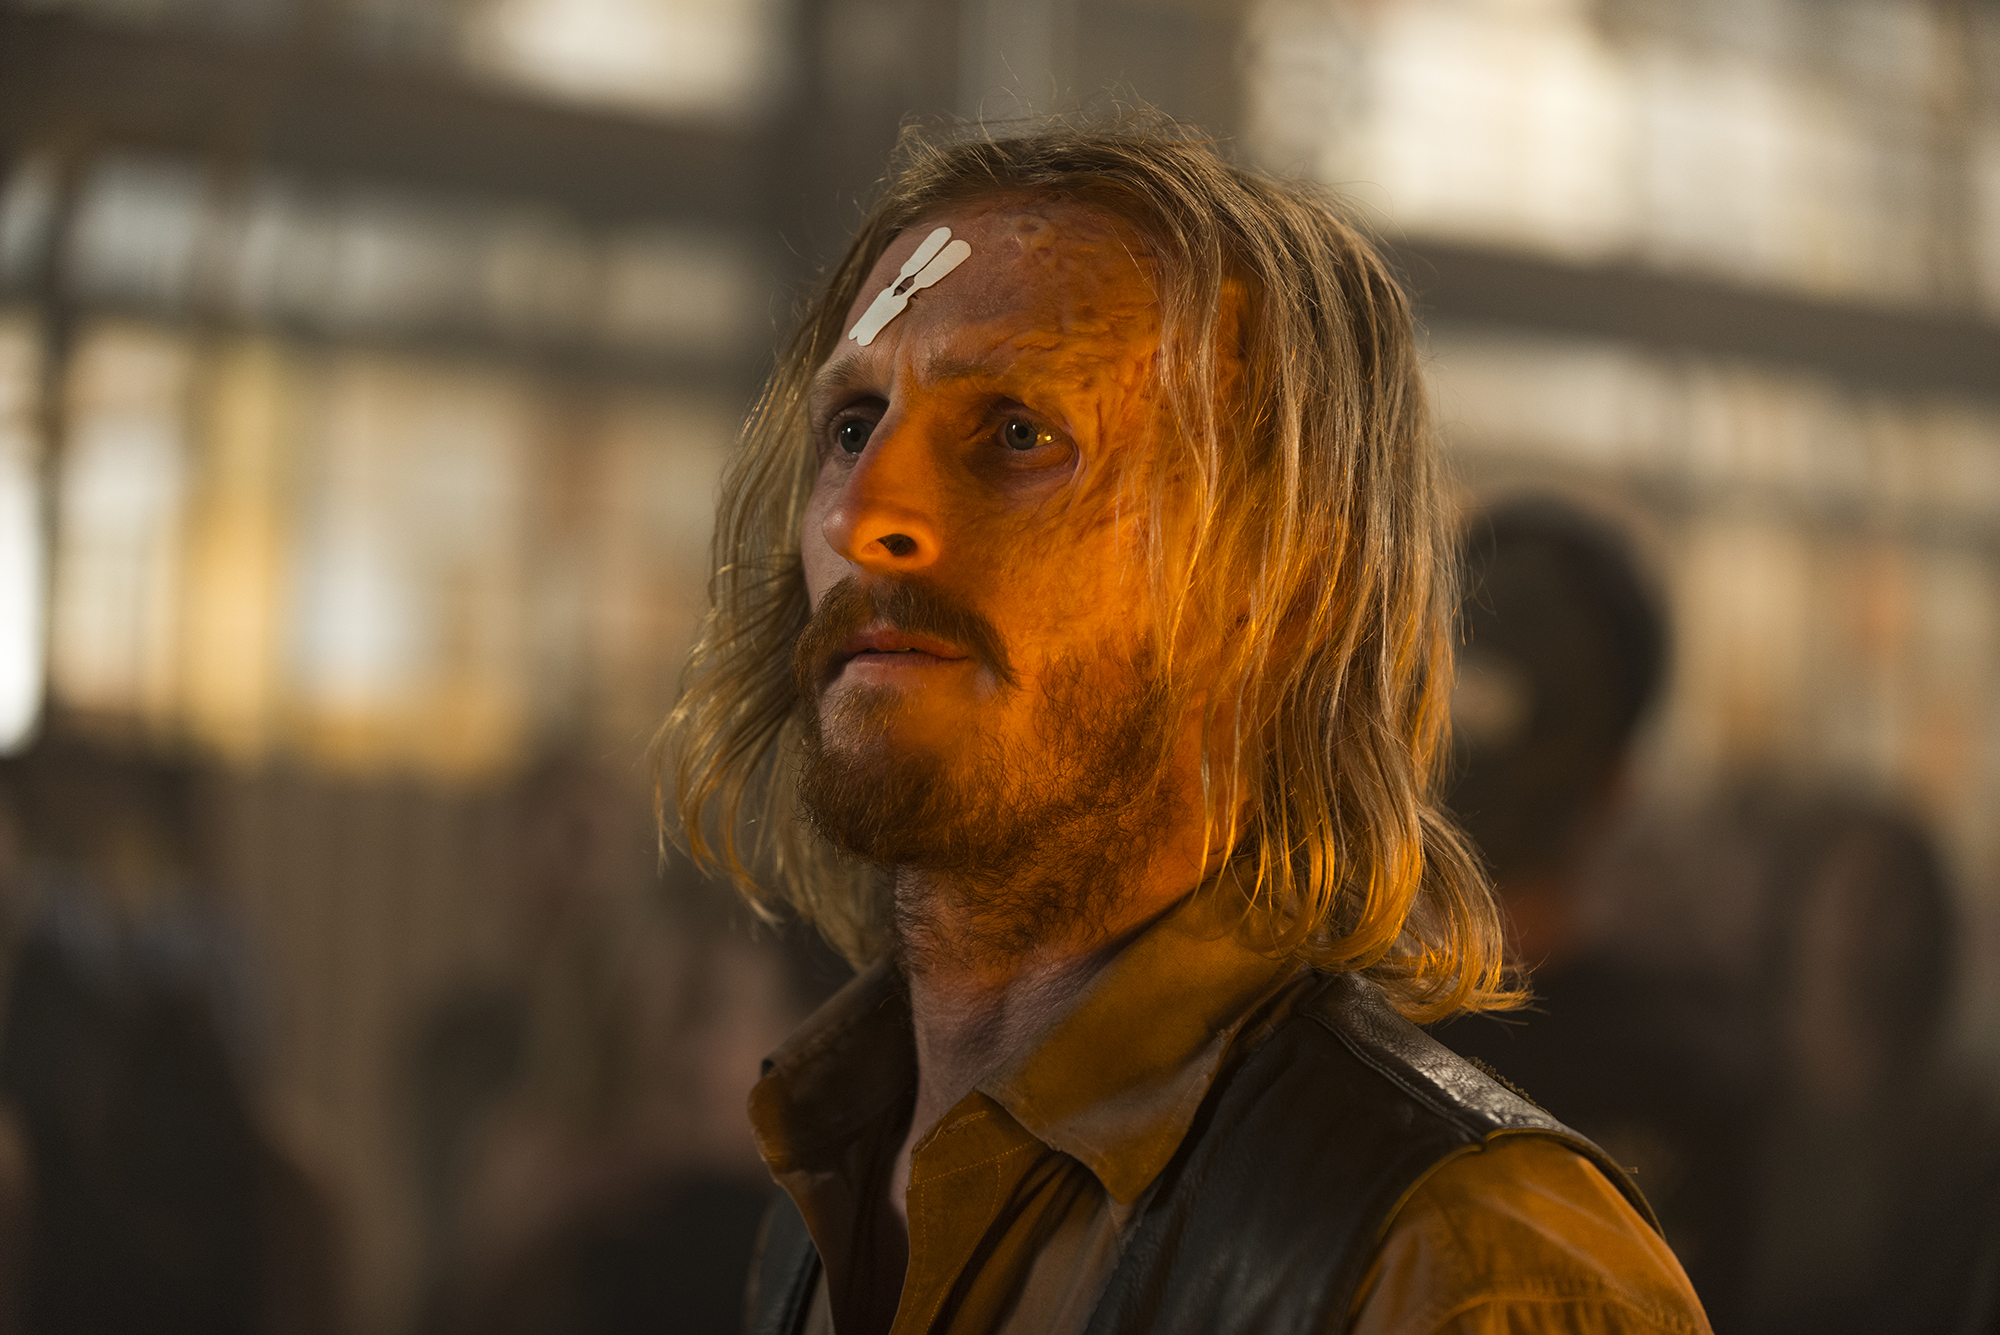 Austin Amelio as Dwight - The Walking Dead, Season 7, Episode 11